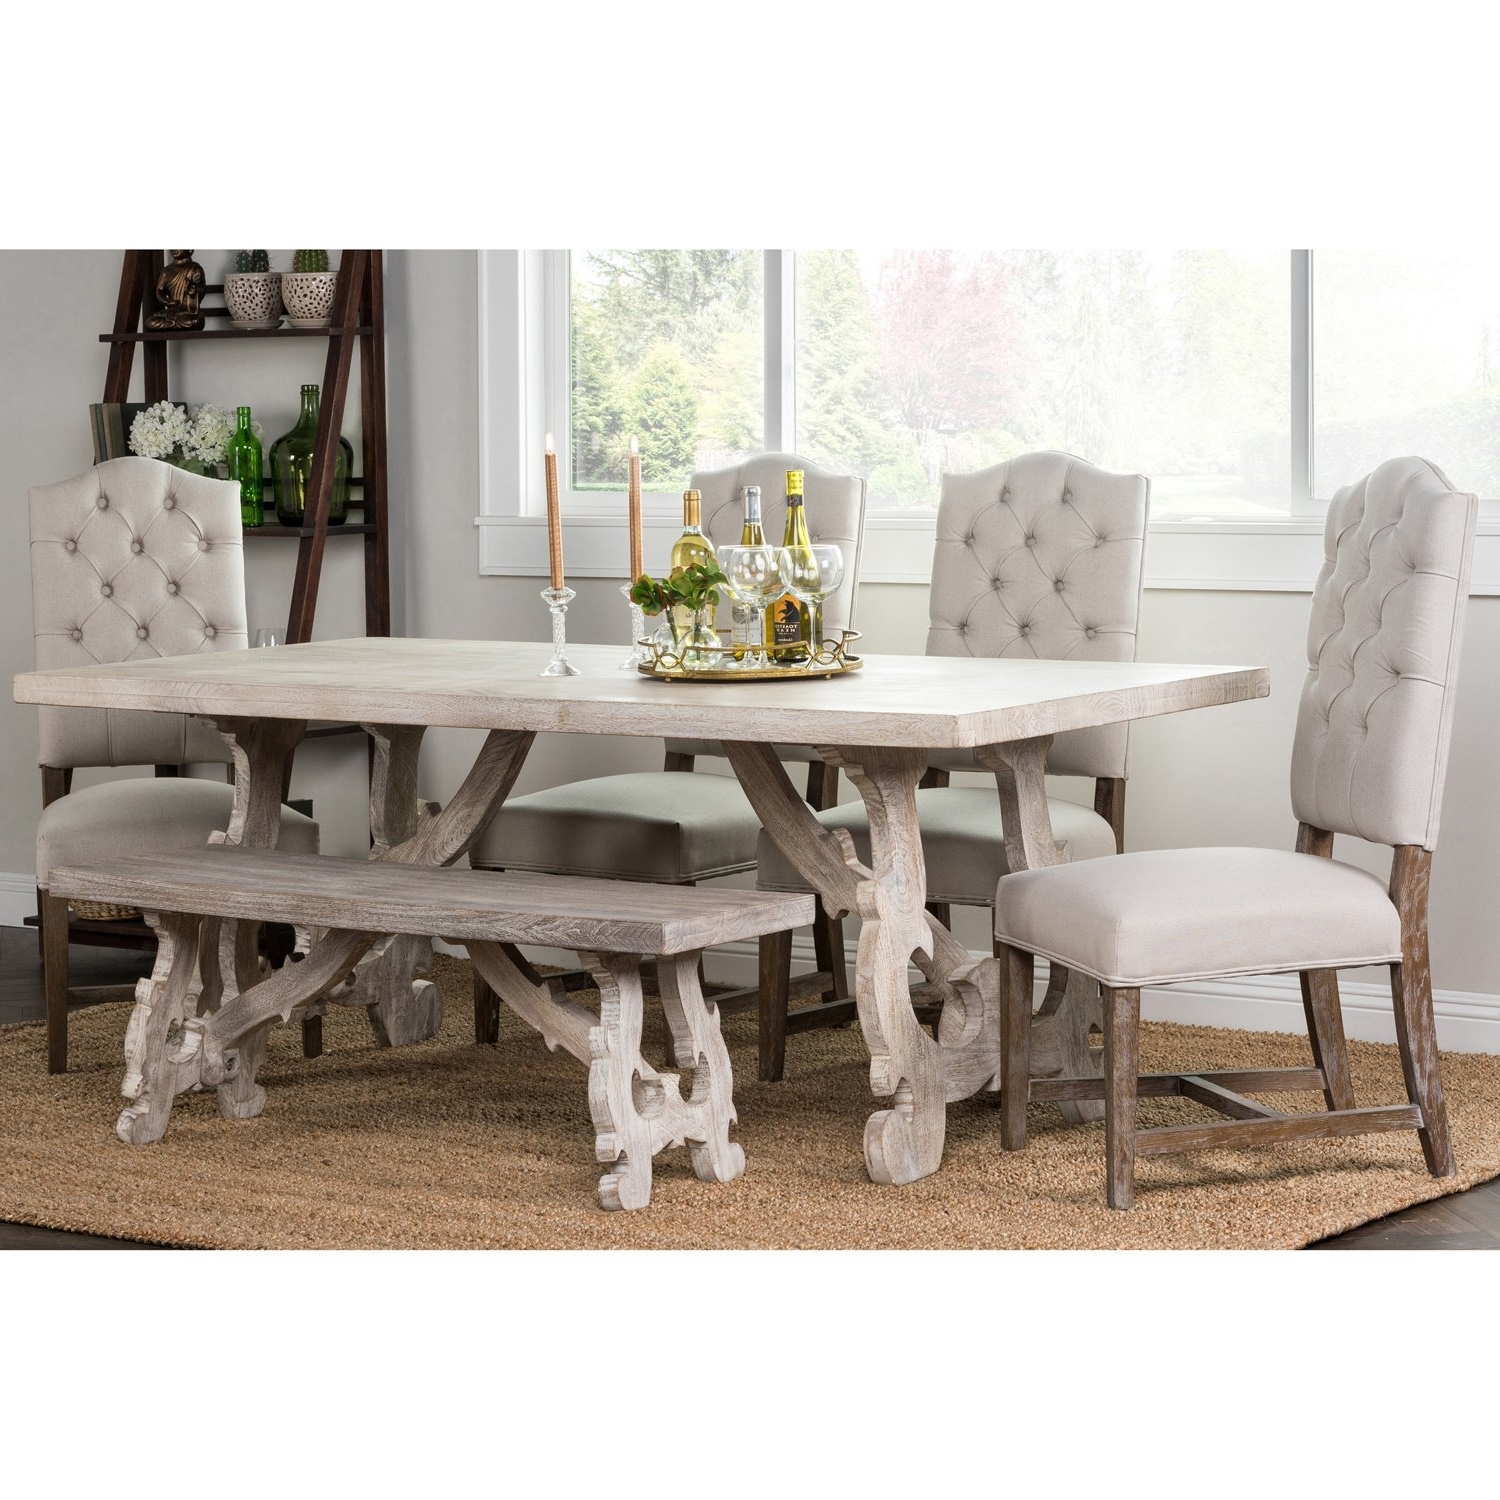 Most Popular 87 Inch Dining Tables Within Shop Elliott Rustic Hand Crafted 76 Inch Dining Tablekosas Home (View 16 of 25)